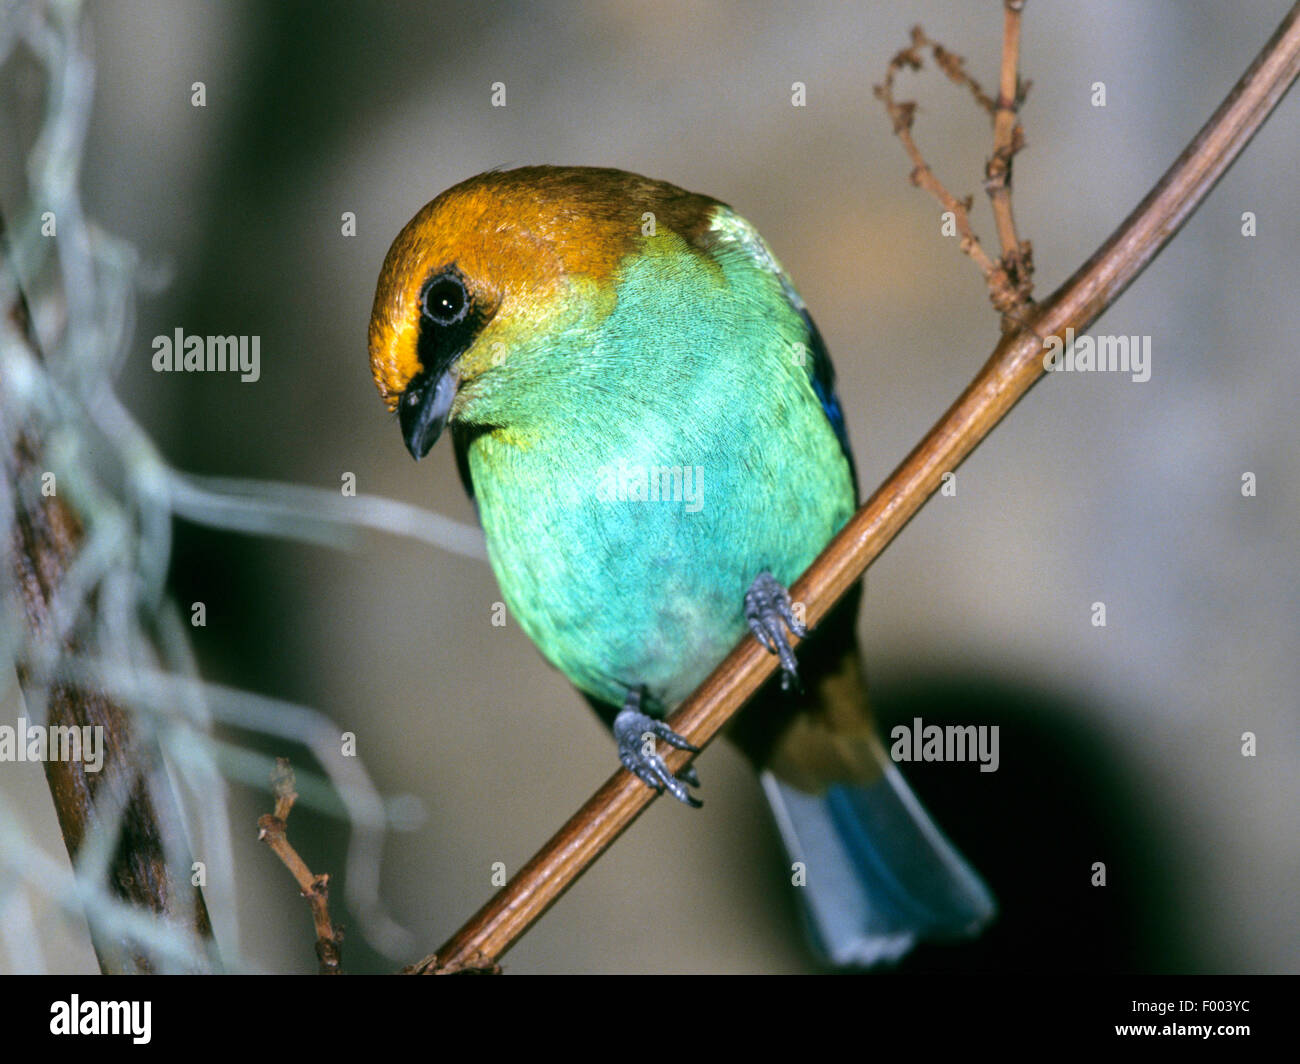 bay-headed tanager (Tangara gyrola), female - Stock Image